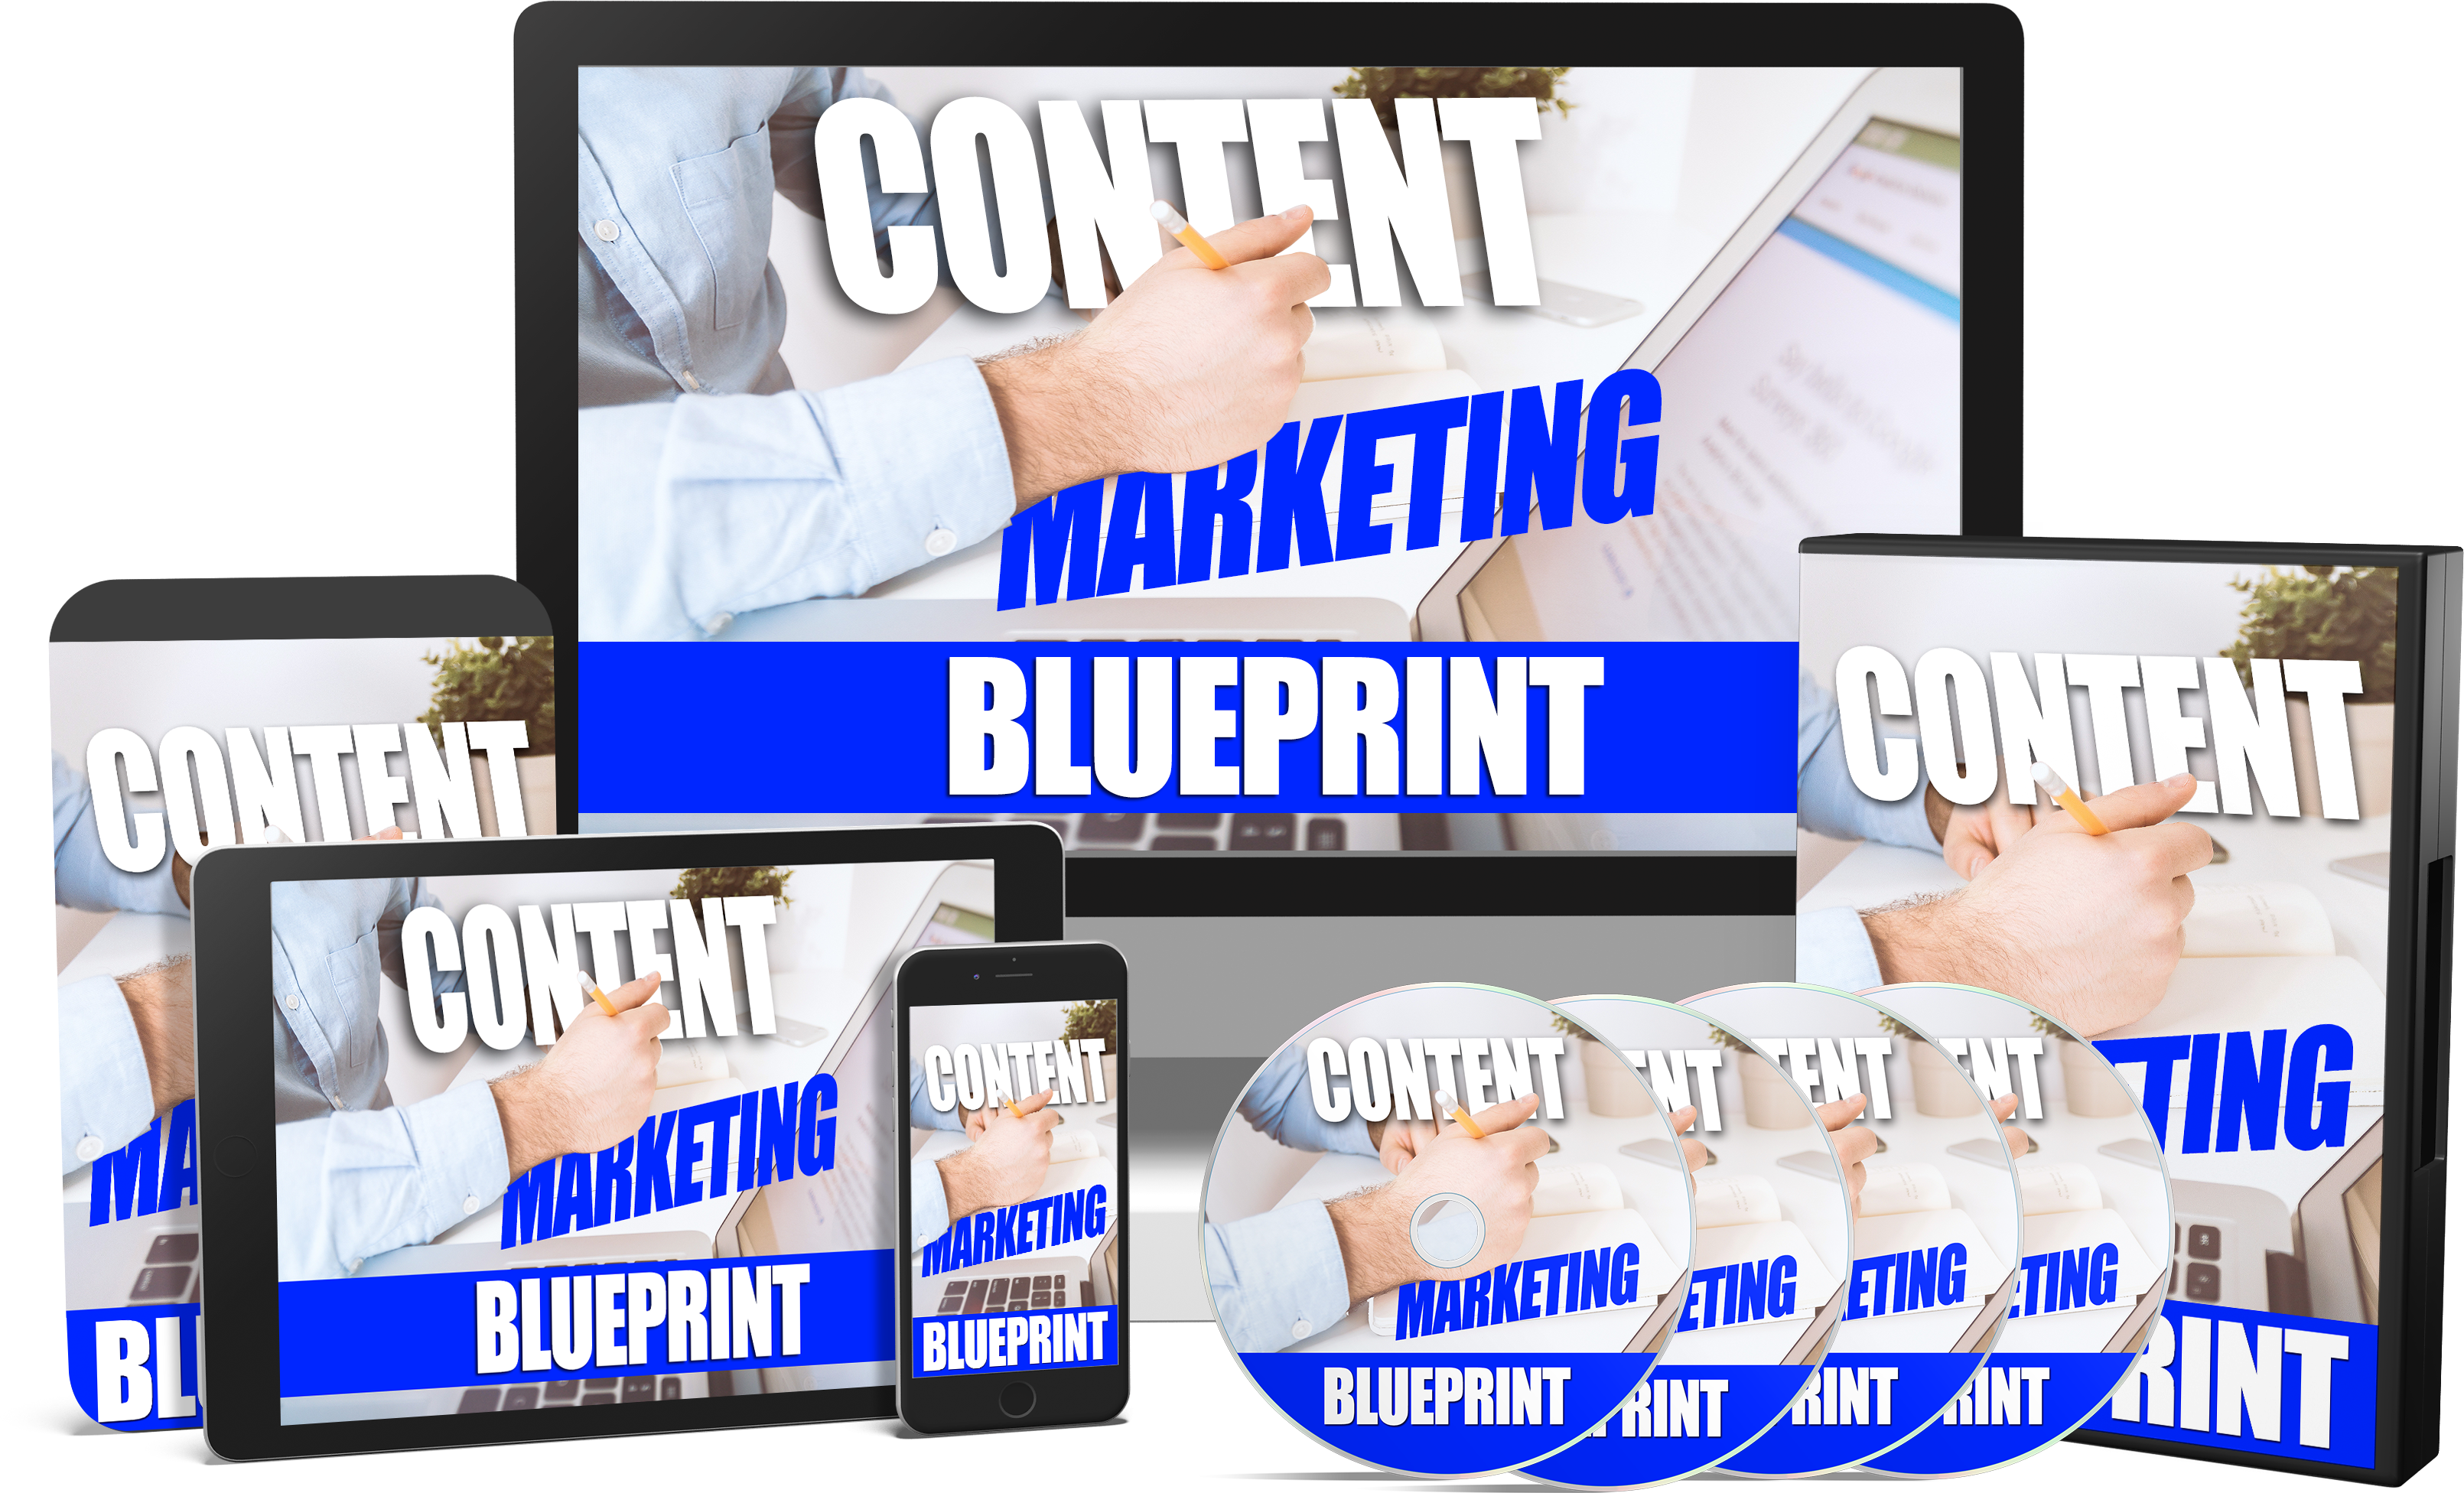 Content marketing blueprint plr sales funnels fully integrated sales funnel ready to resell malvernweather